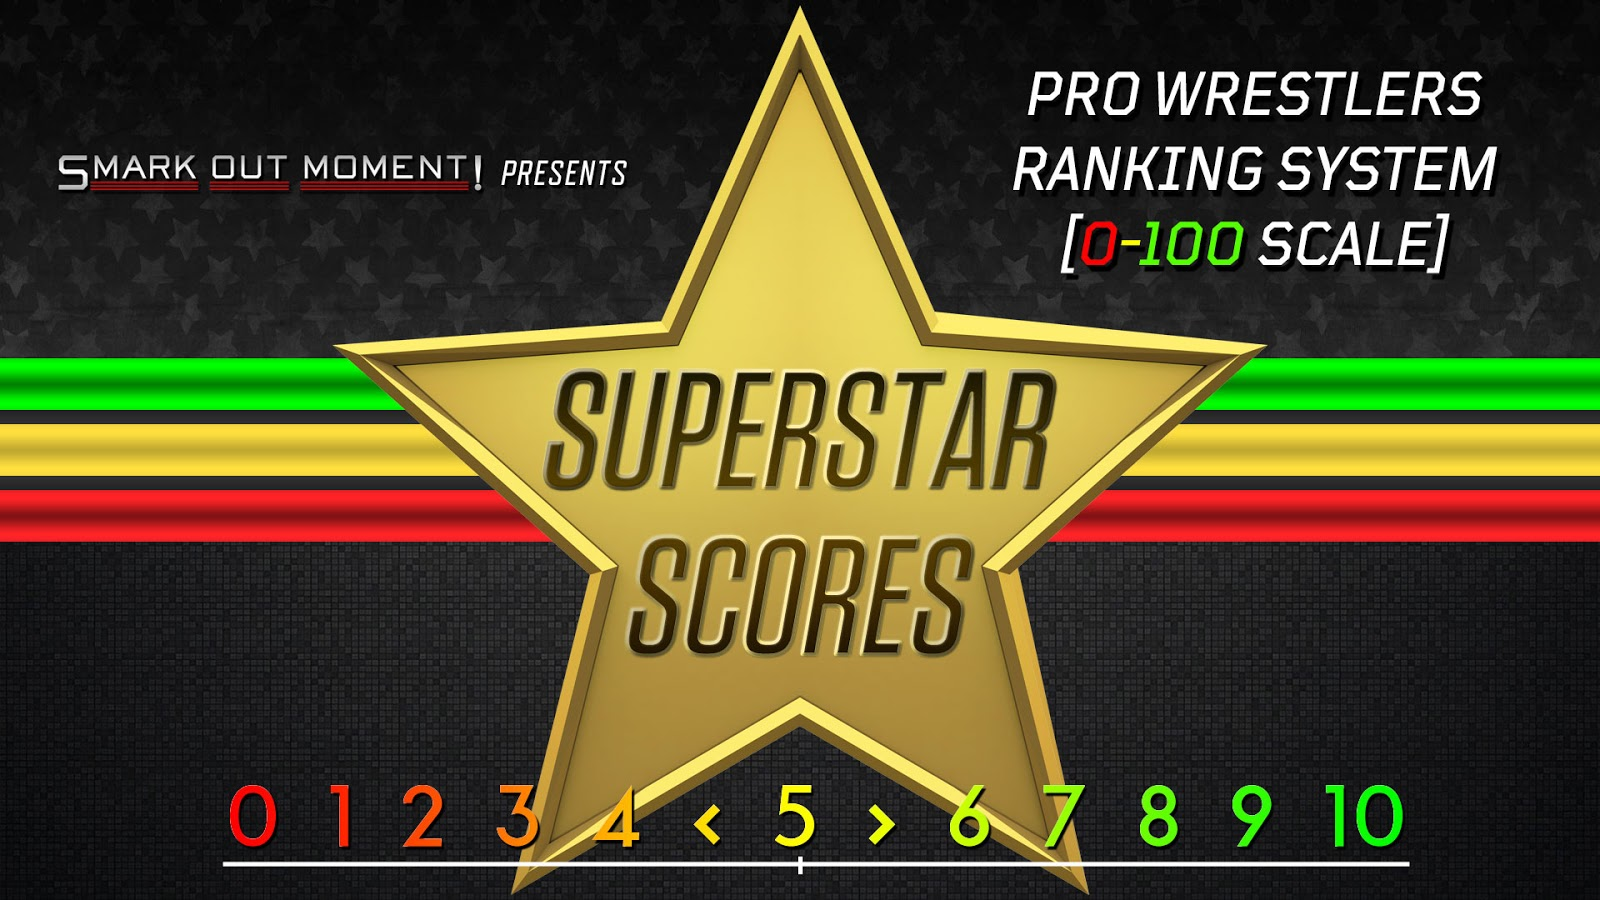 Wrestler Edge rating scale 1-100 Is Wrestler Edge the best wrestler ever?